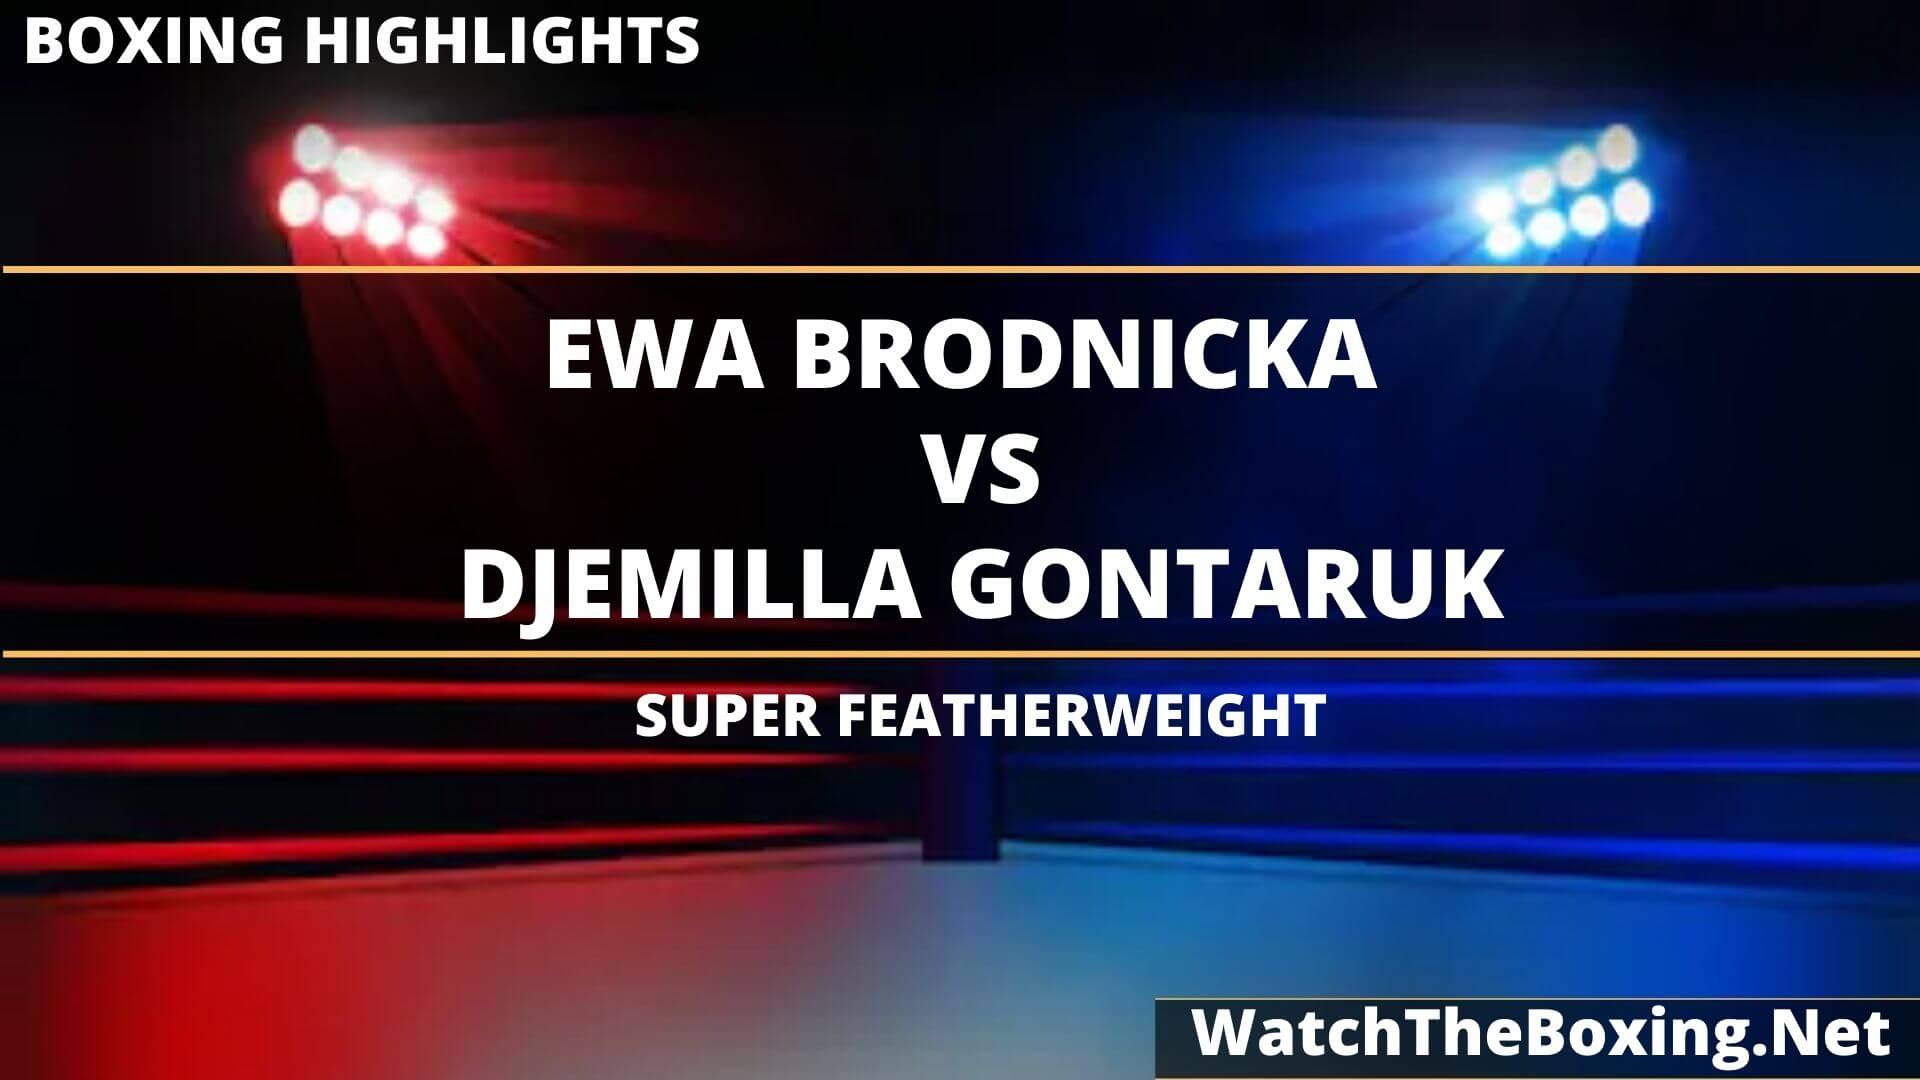 Ewa Brodnicka Vs Djemilla Gontaruk Highlights 2020